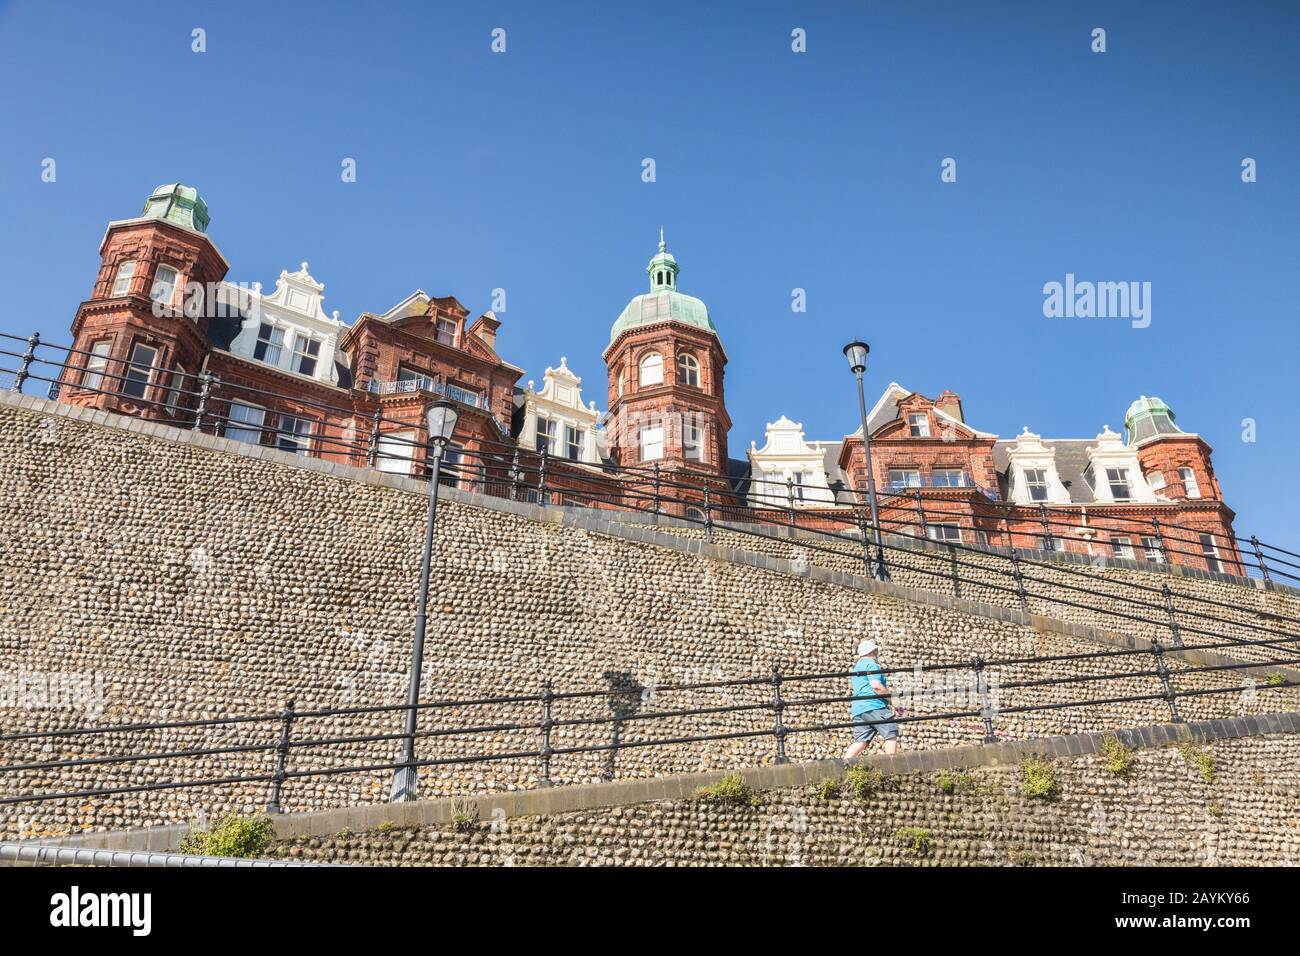 30 June 2019: Cromer, Norfolk, UK - Cobbled sea wall and promenade buildings, one man walking up the zig zag. Clear blue sky. Stock Photo